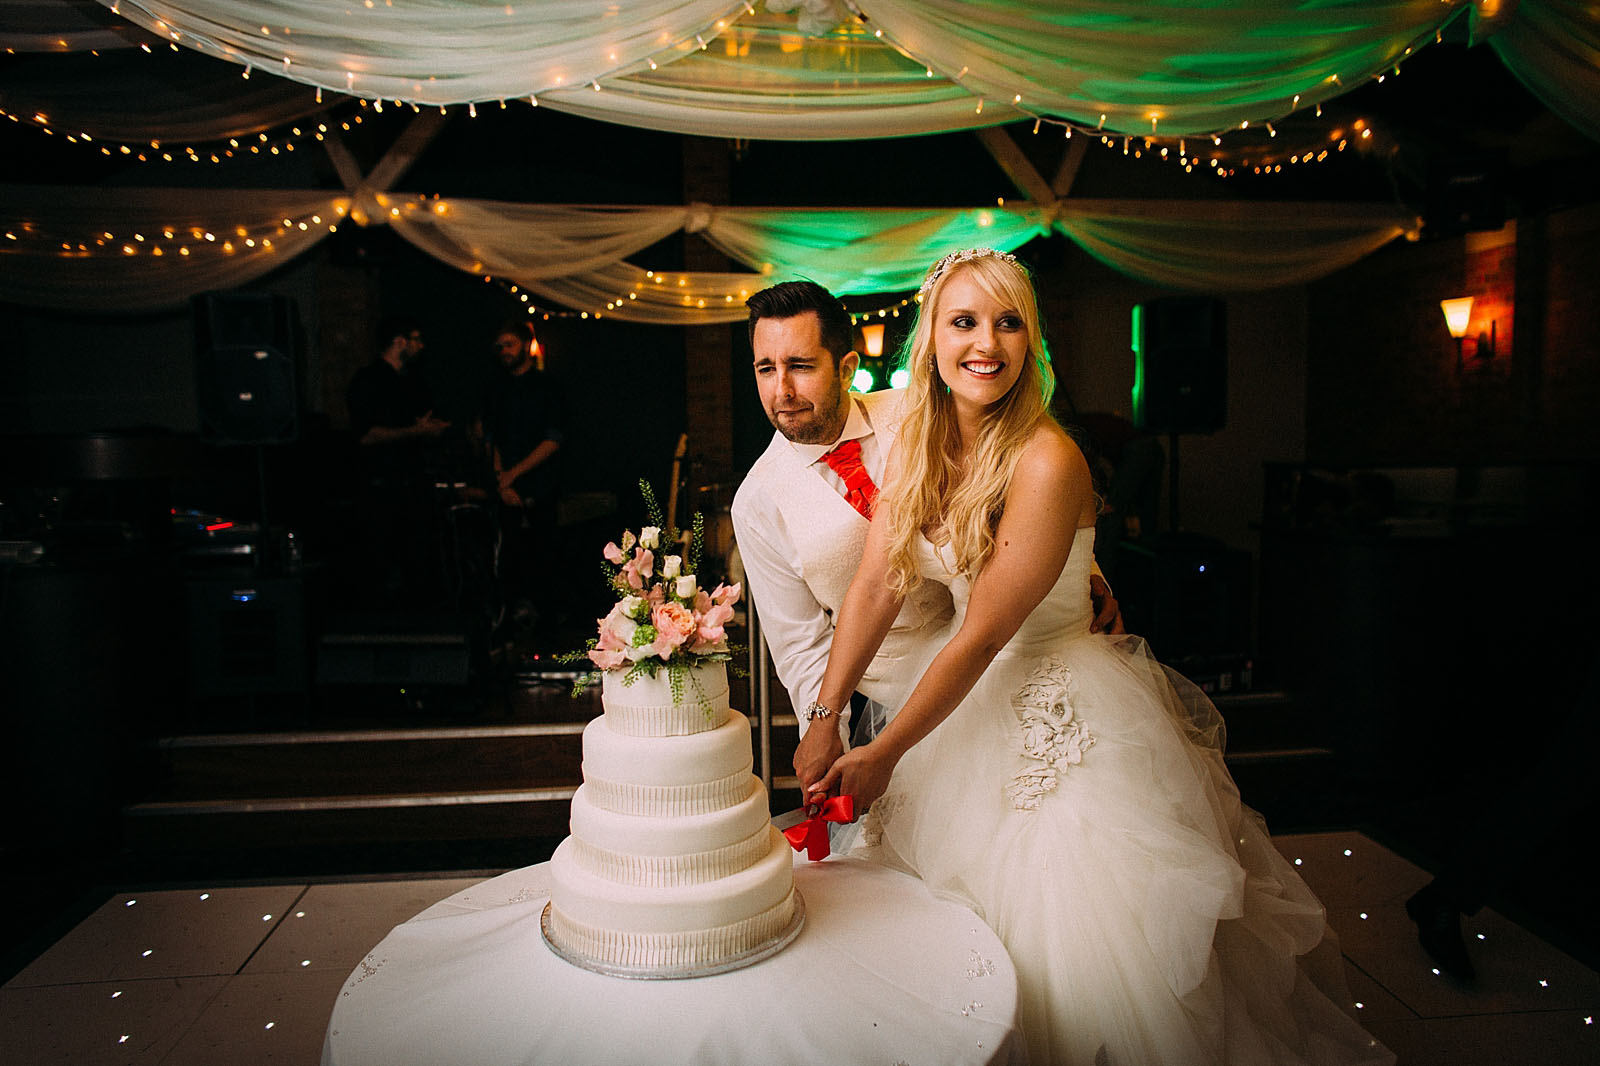 Lawson_Best_Wedding_2015_105